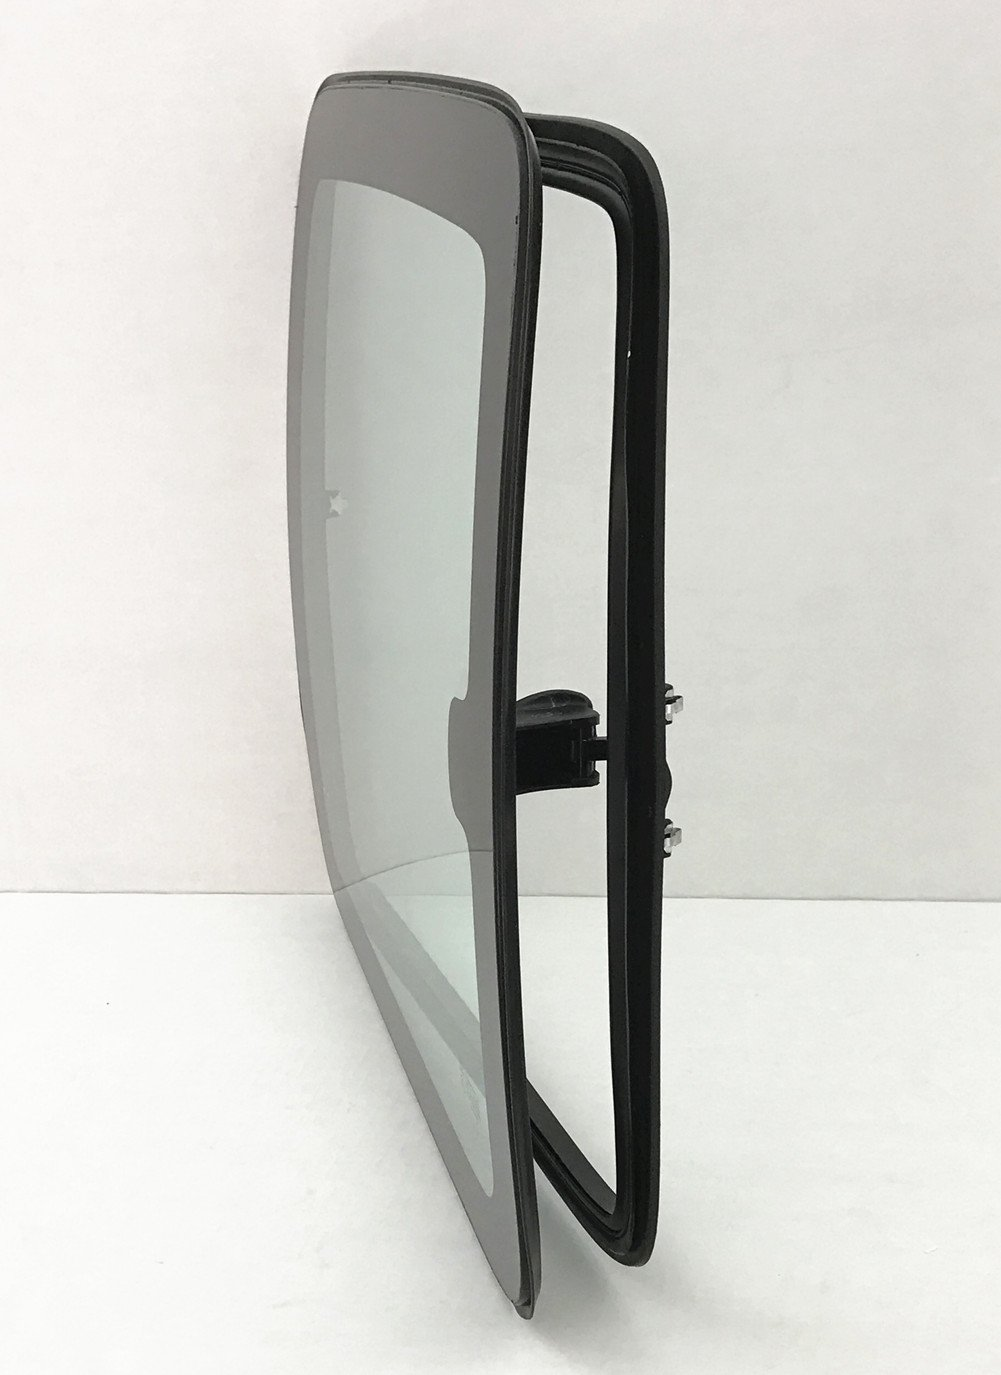 C1500 C2500 C3500 K1500 K2500 K3500 2 Door Extended Pickup Driver Side Left Rear Quarter Glass Window Movable w//Frame /& Latch Clear Fits 1999-2006 Chevrolet Silverado